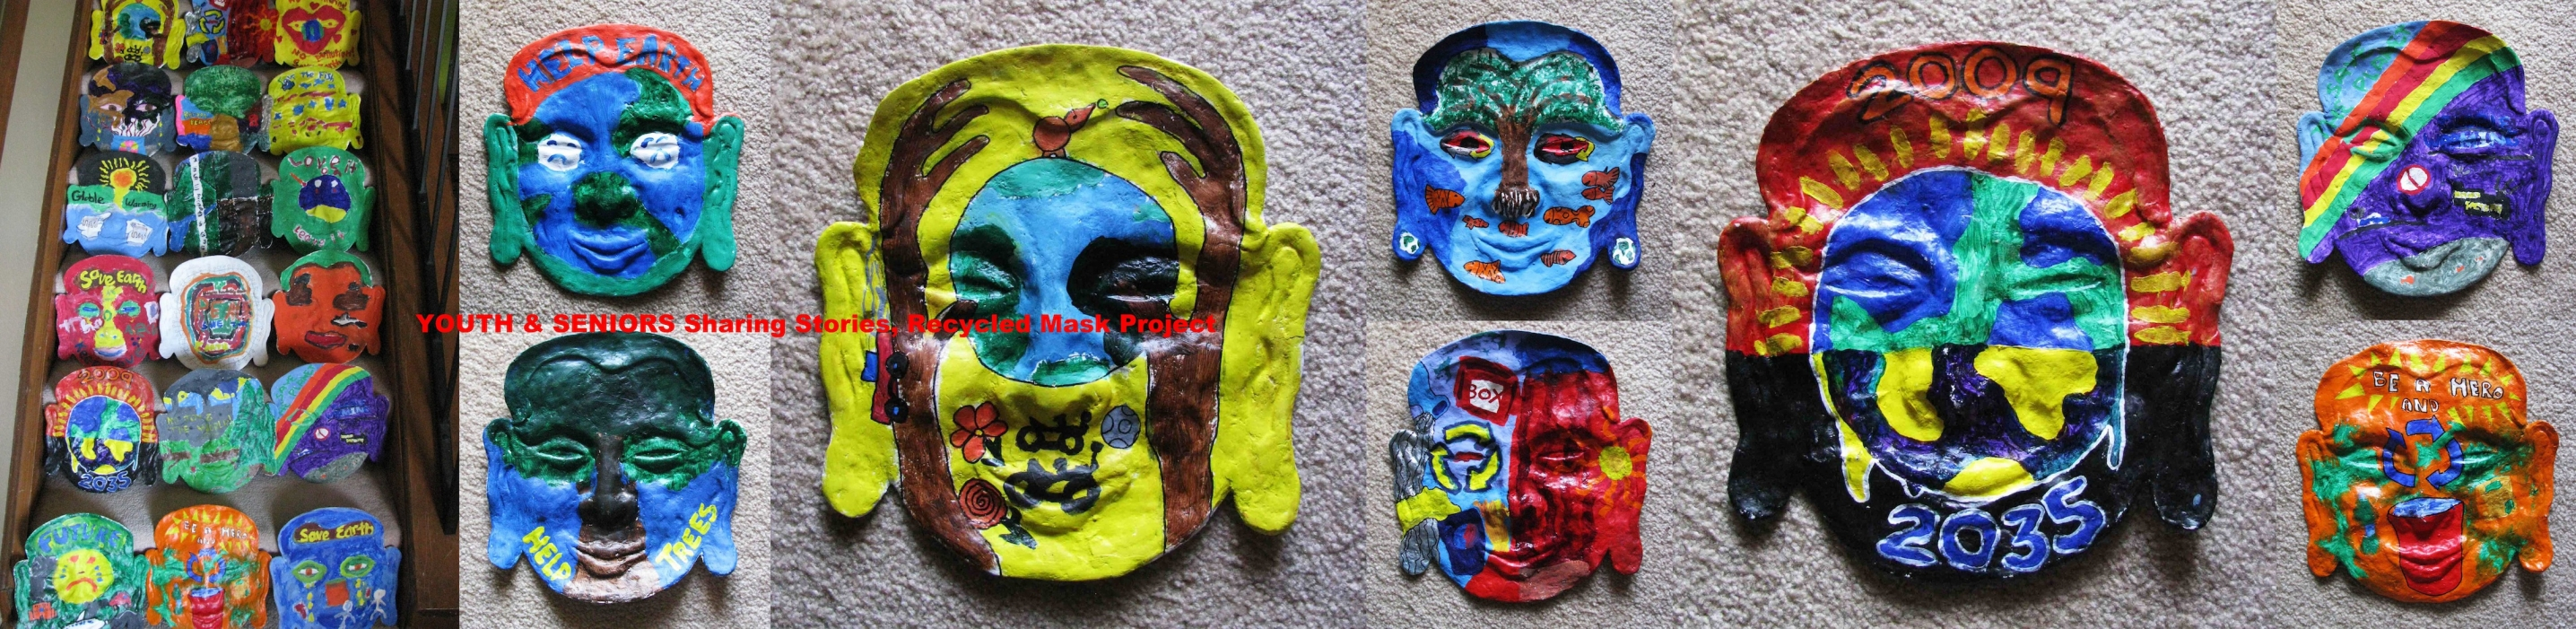 http://www.erikotsogo.com/files/gimgs/th-427_Youth & Seniors Sharing Stories, Recycled Mask Project 2 (SMALLER)_v3.jpg